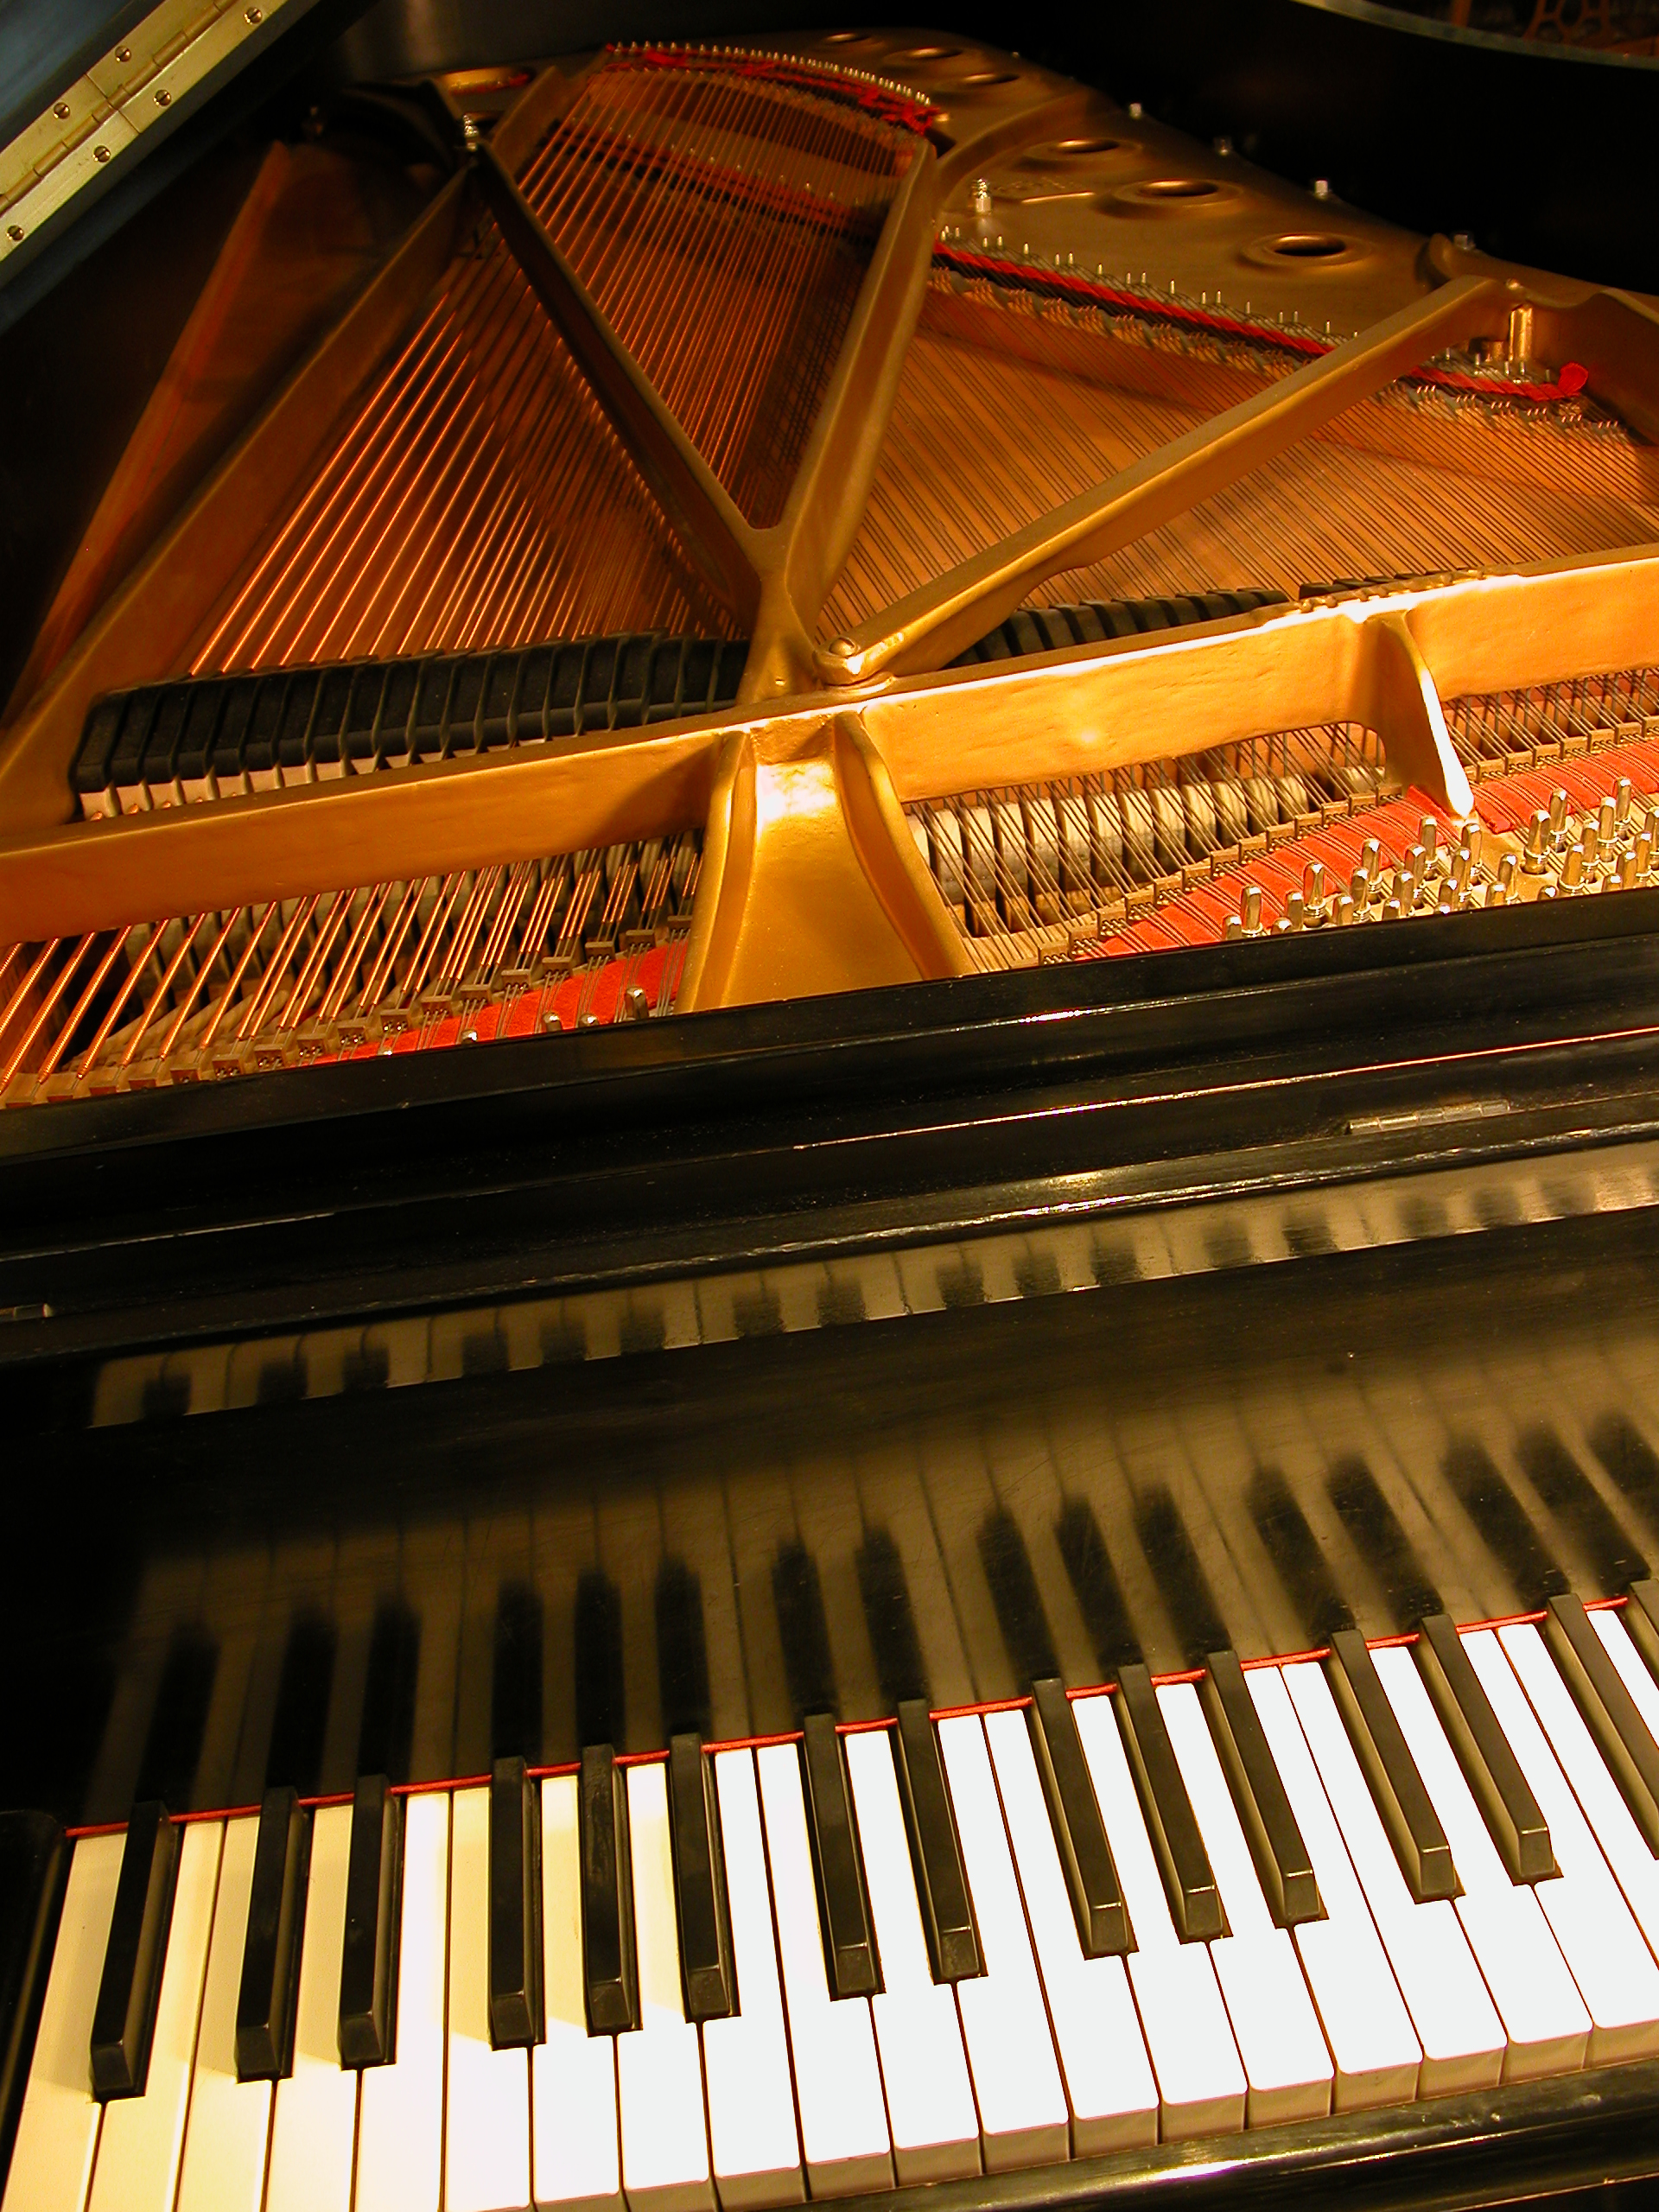 a look at the history of the piano What made you want to look up piano a brief history of 'potshot' duck, or you might be dinner what is a 'thirst trap' a tall drink of water ask the editors.